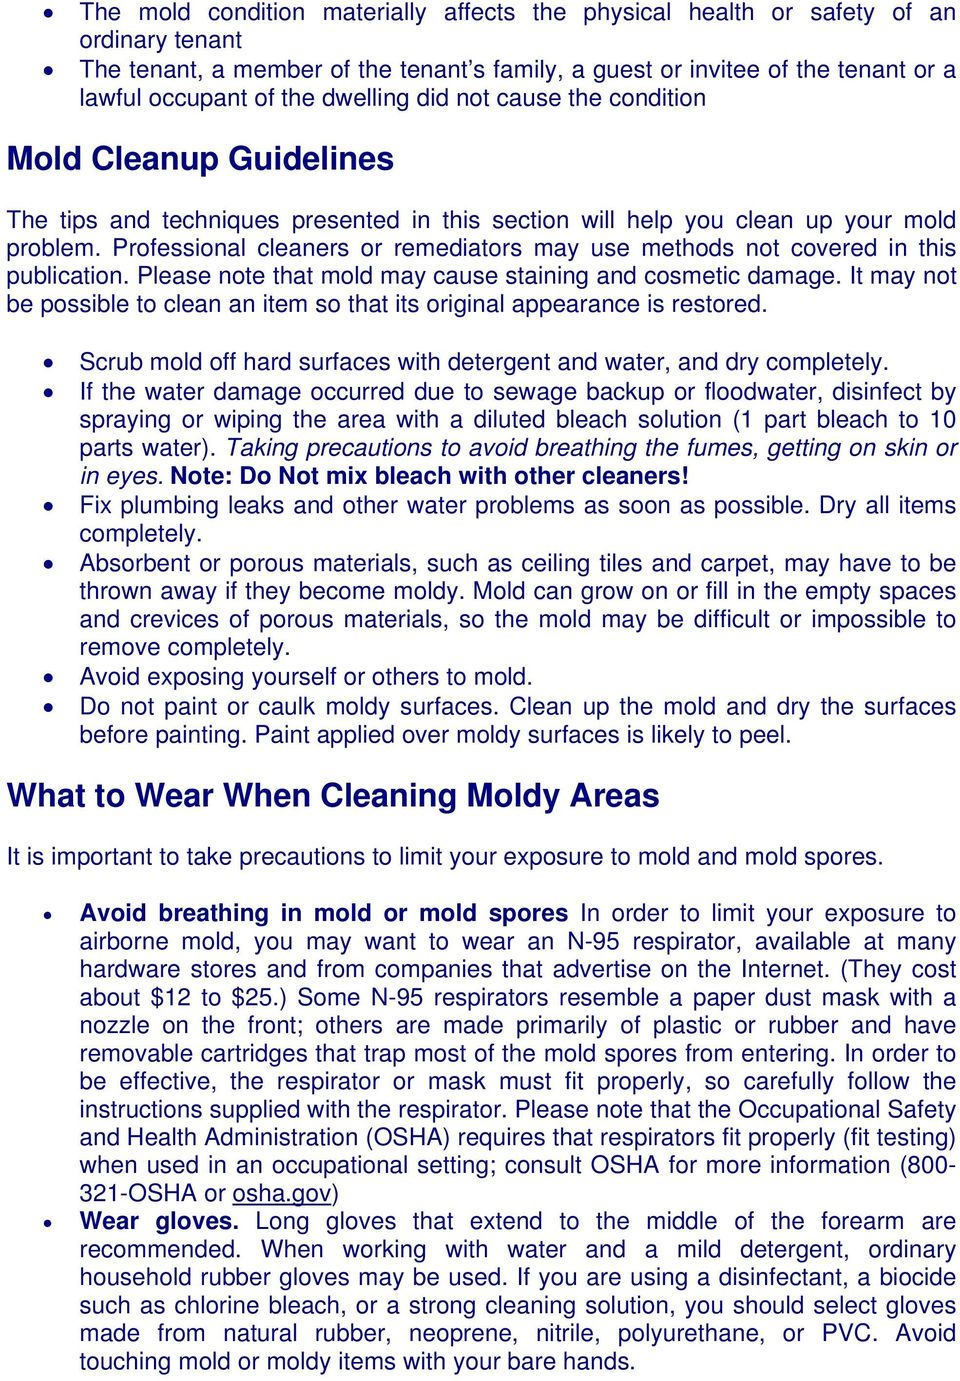 Professional cleaners or remediators may use methods not covered in this publication. Please note that mold may cause staining and cosmetic damage.